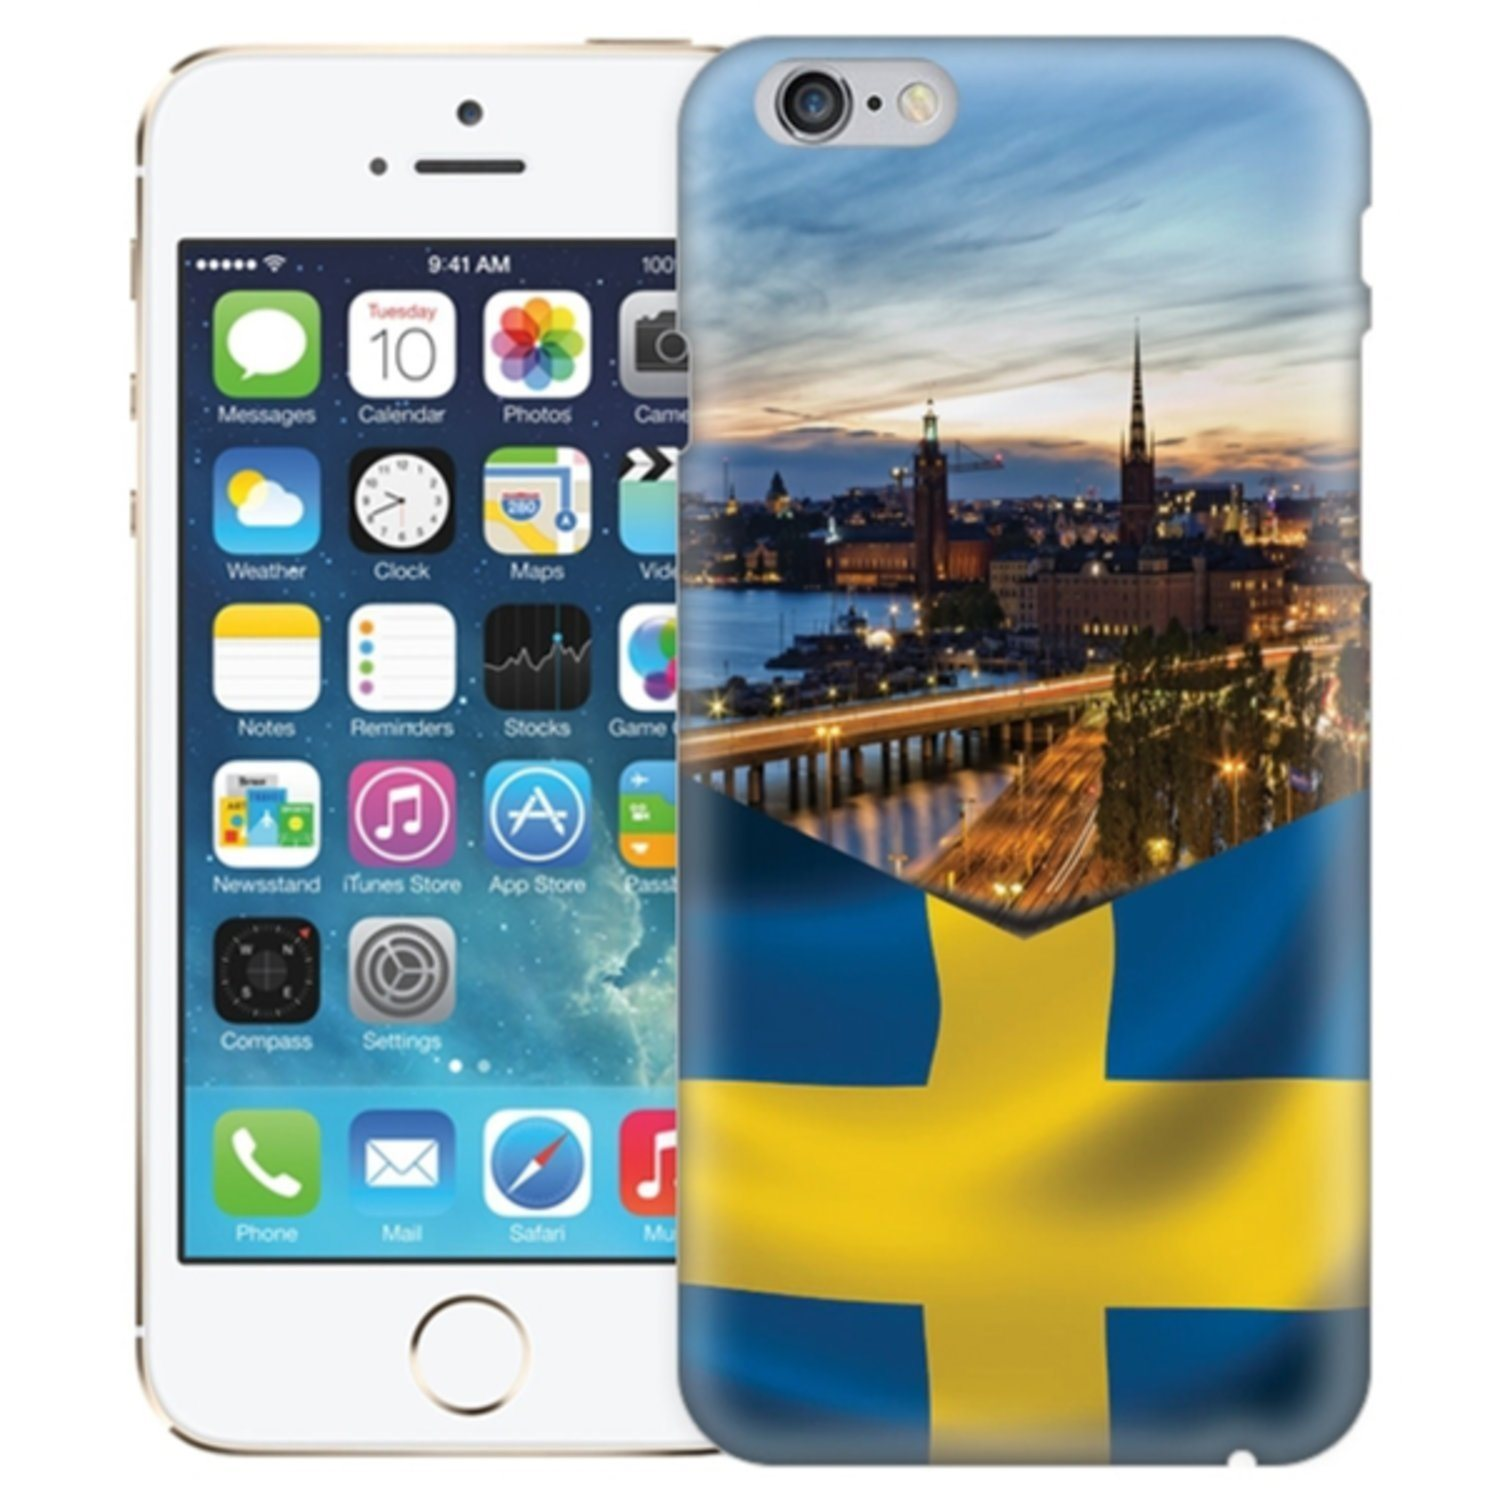 iPhone 6 6s Plus - Skal Sverige (308635902) ᐈ Hobbyprylar på Tradera c8c3bbbc308ae